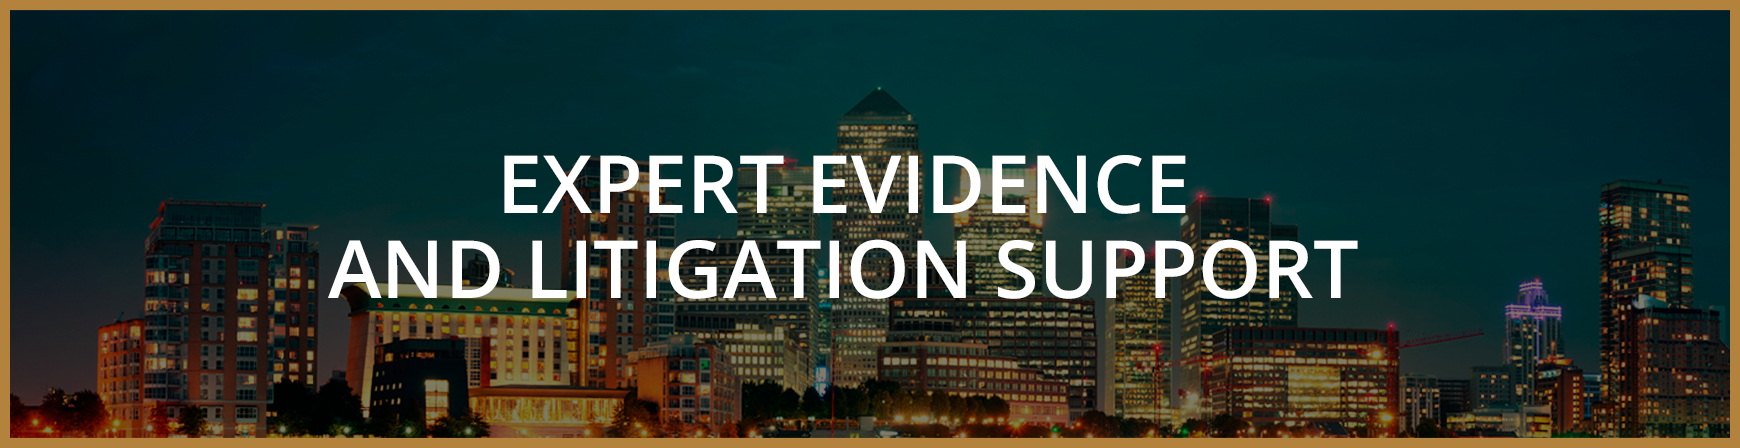 Expert Evidence and Litigation Support